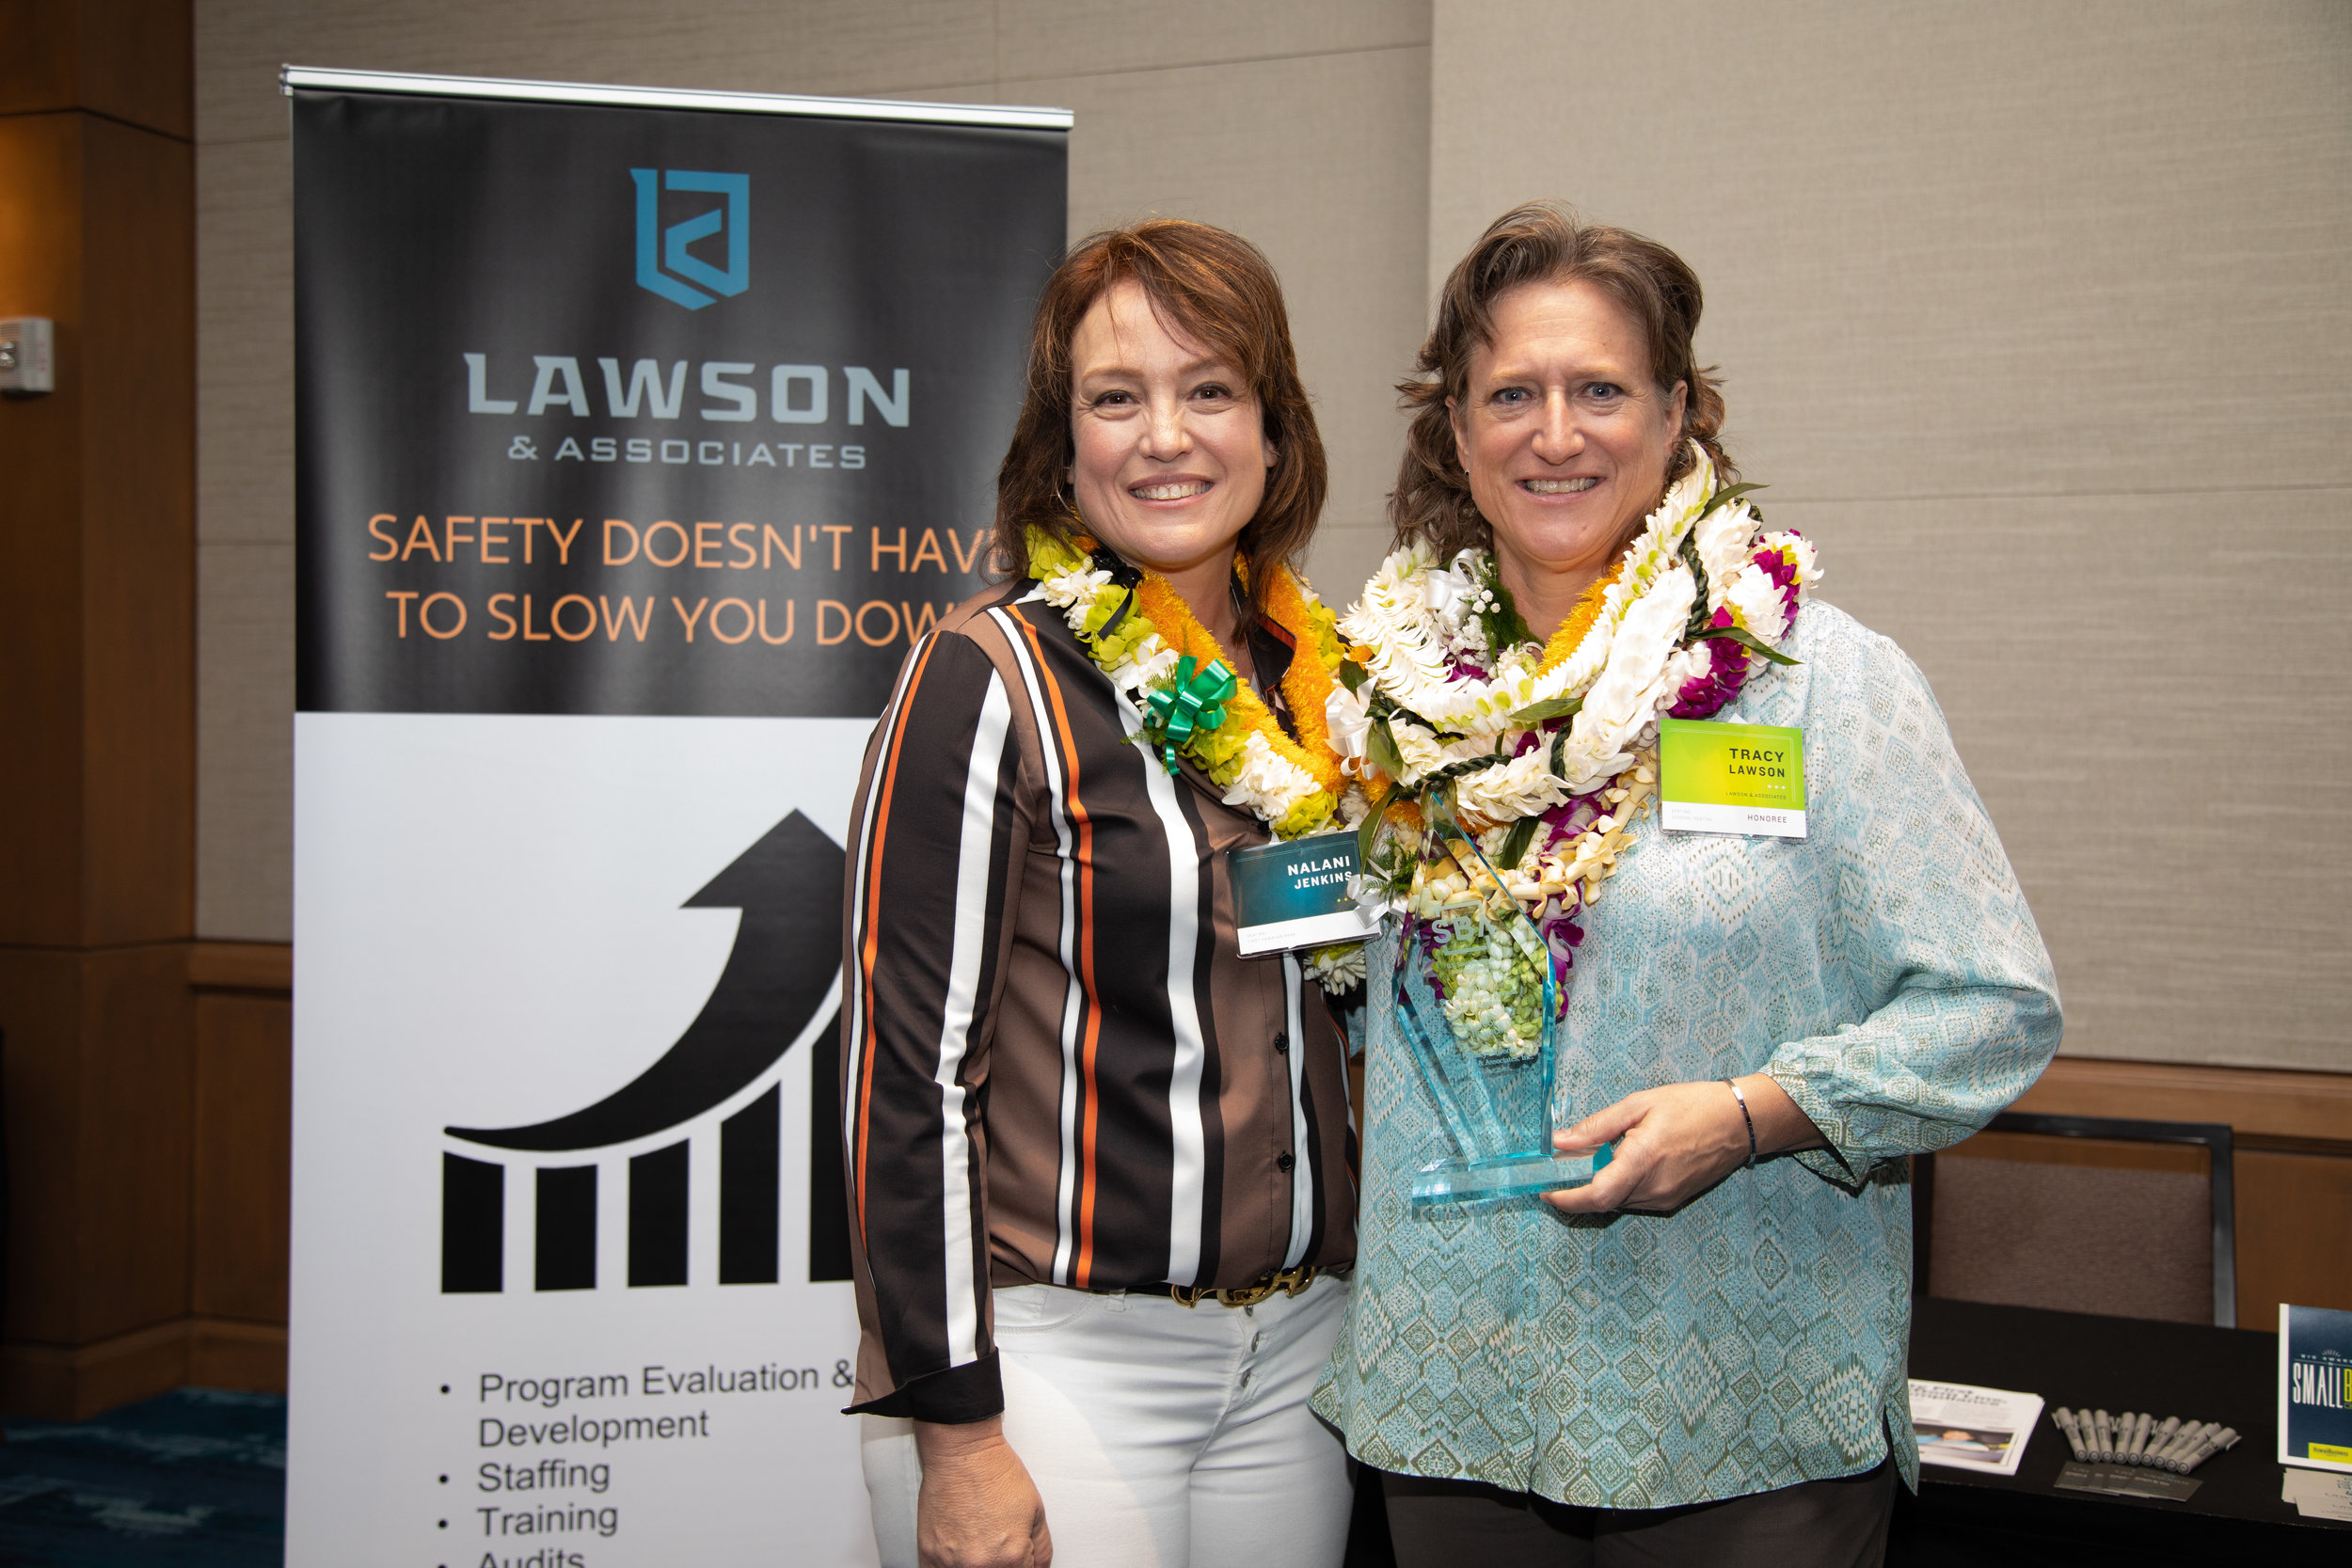 Lawson & Associates, Inc. Safety Company